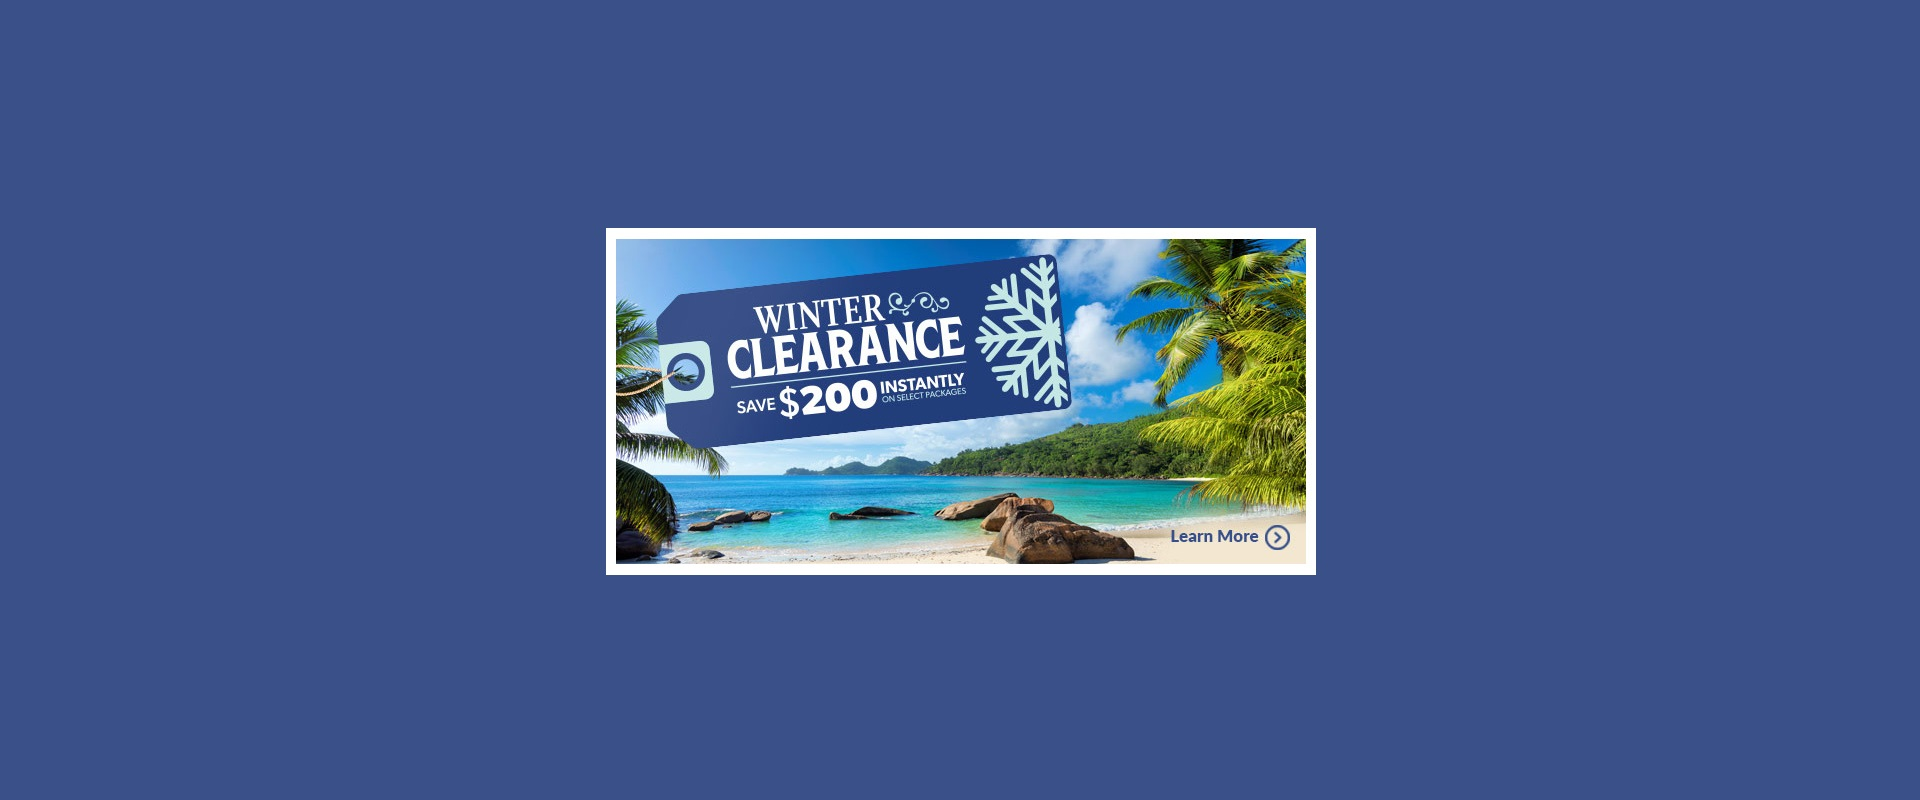 Winter-Clearance-Banner